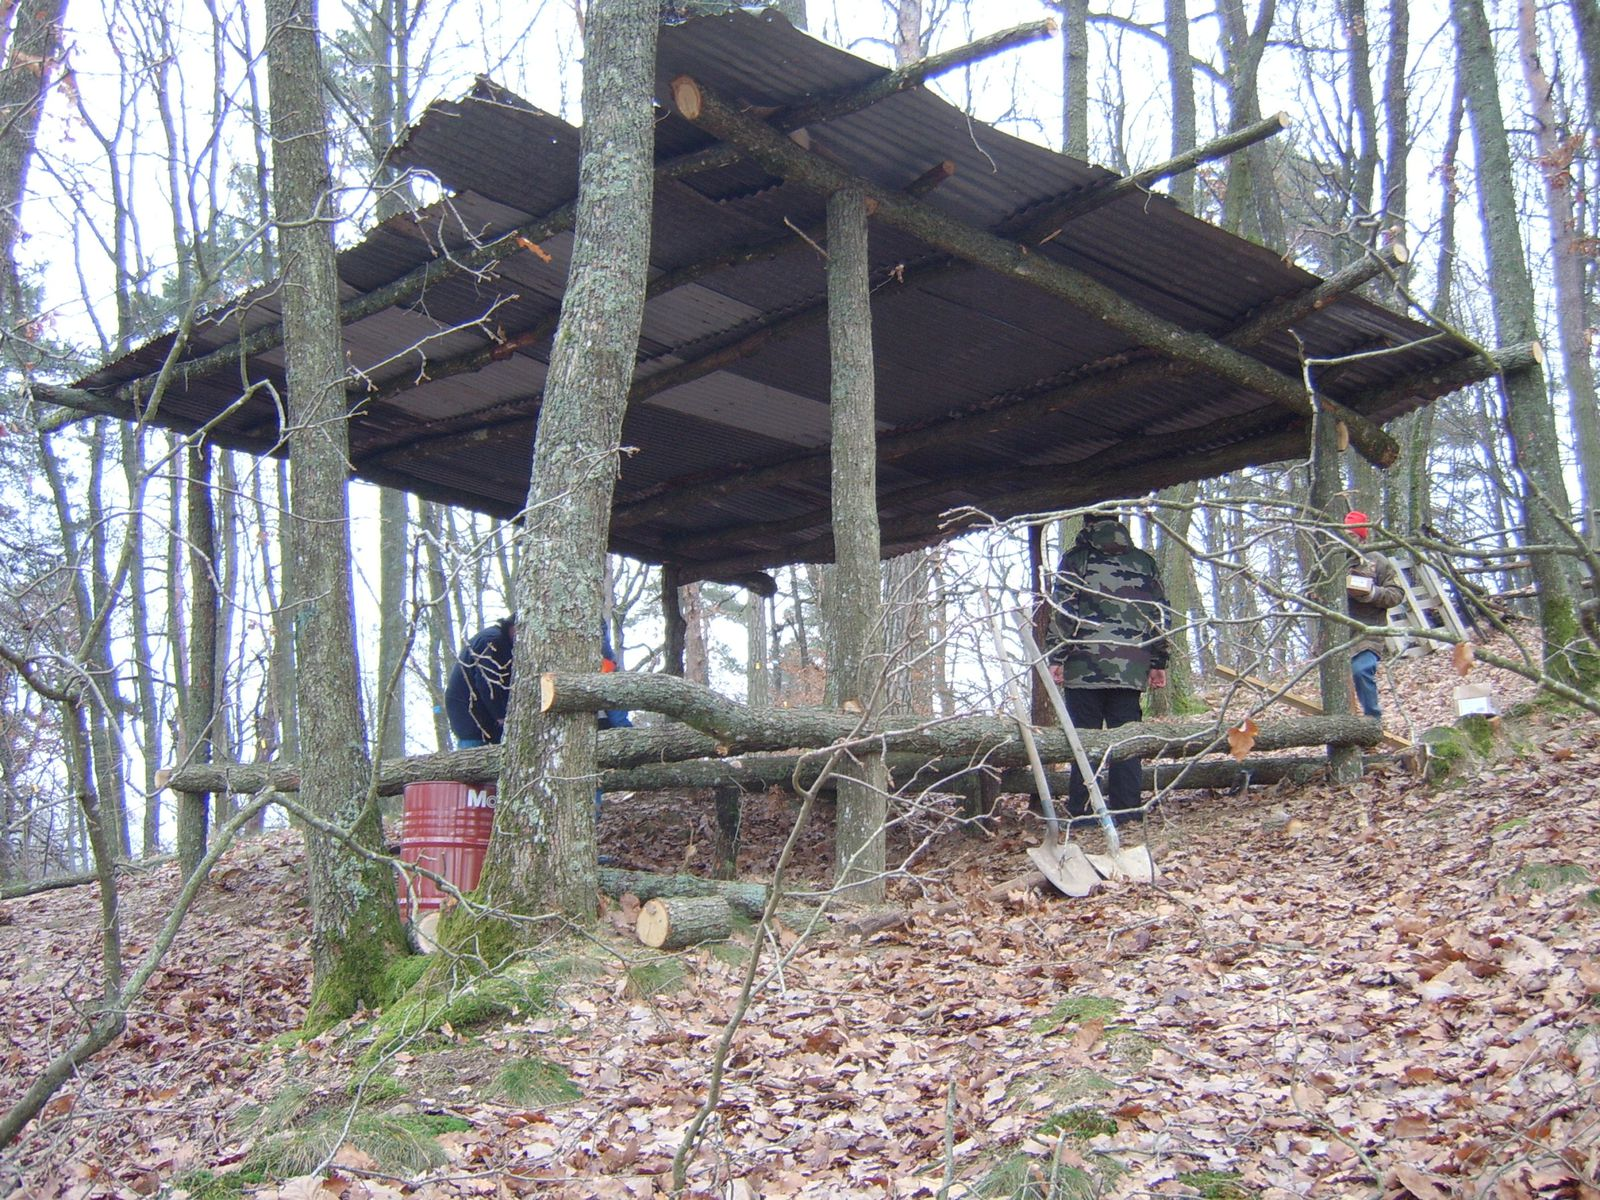 Am nagement nouvelle cabane tamalou airsoft compagnie loire 42 for Terrain construction